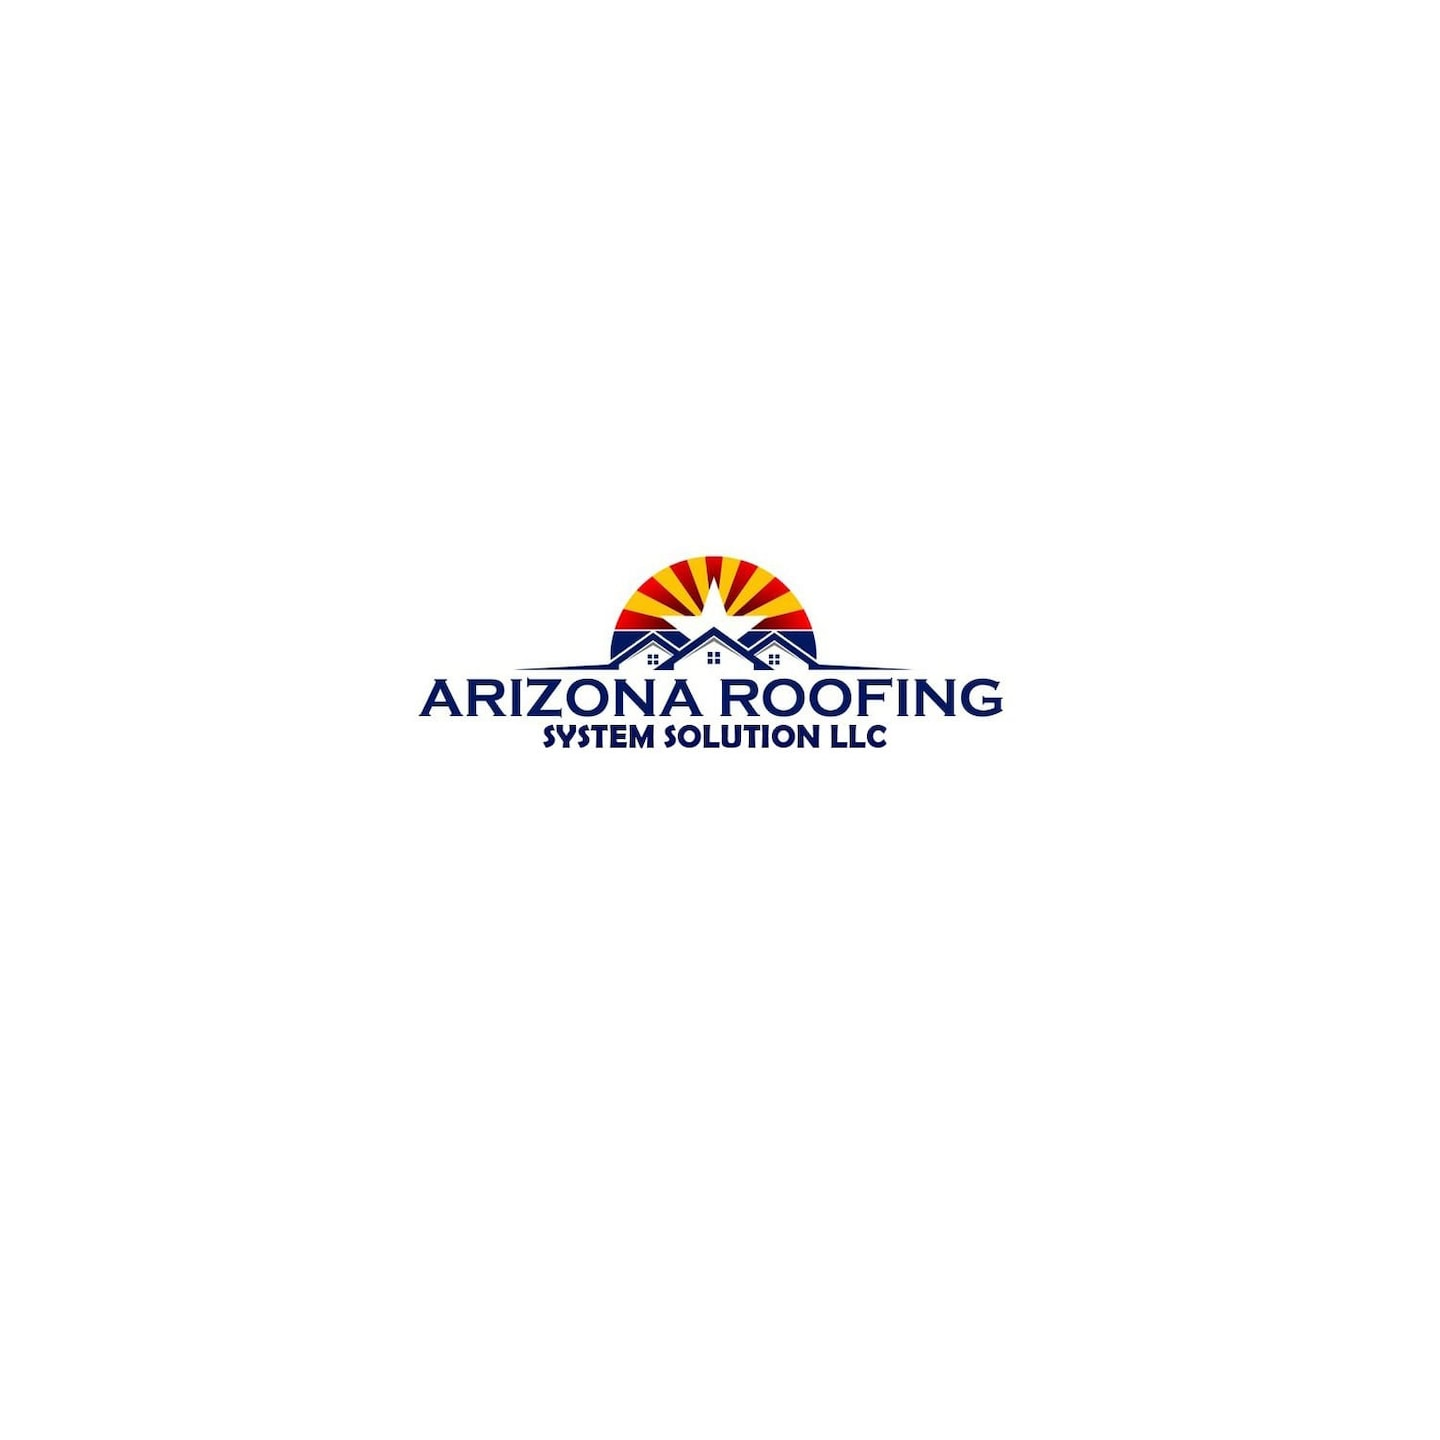 Arizona Roofing System Solution